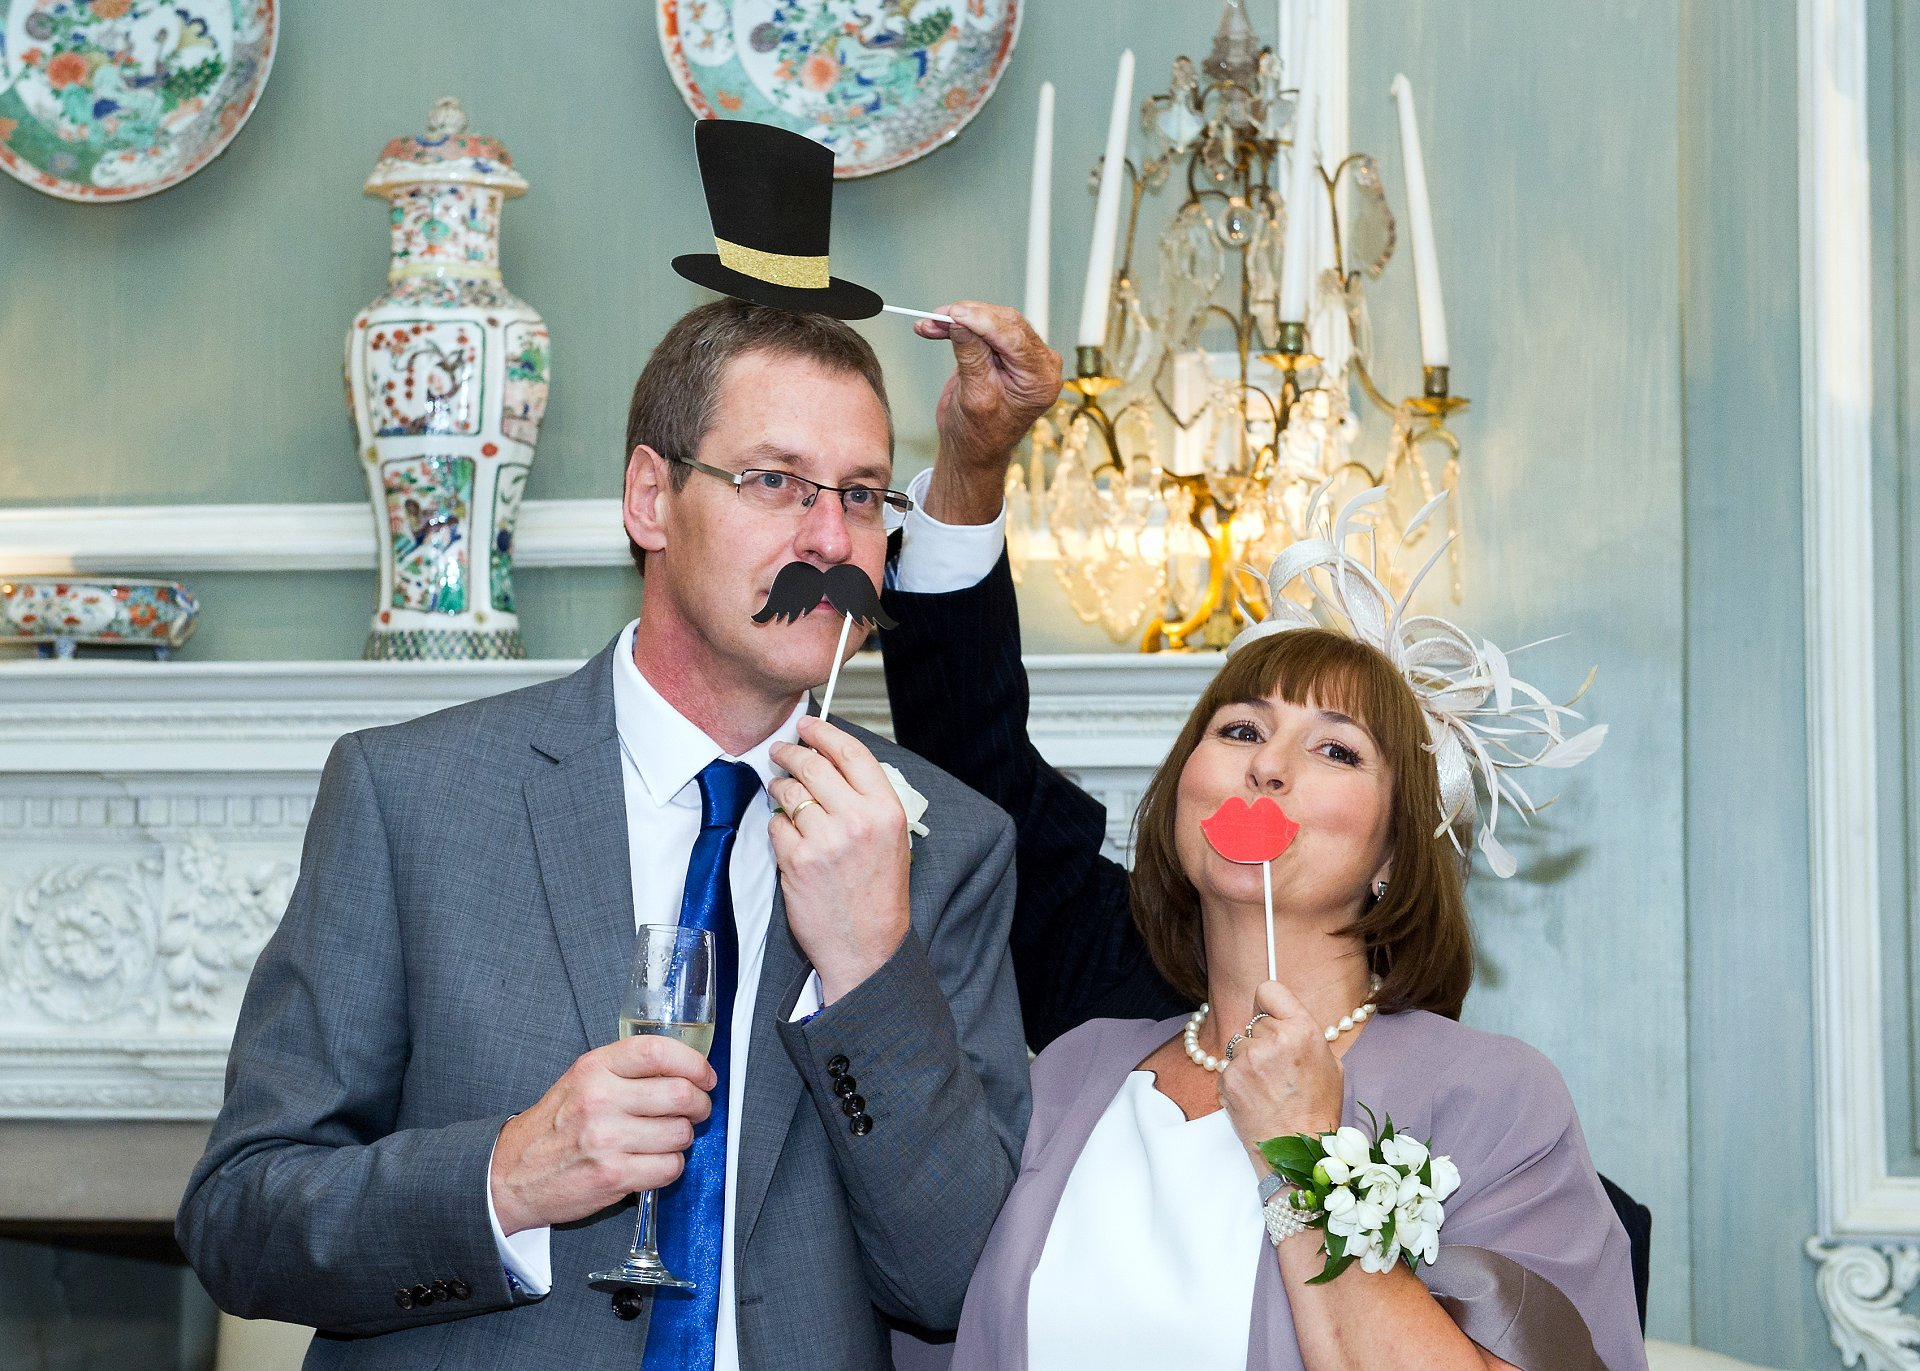 A homemade photo booth and writing table in the ceremony room at Leeds Castle is an ideal set up along with a few simple props. Here, the bride's mother and father pose for a photograph